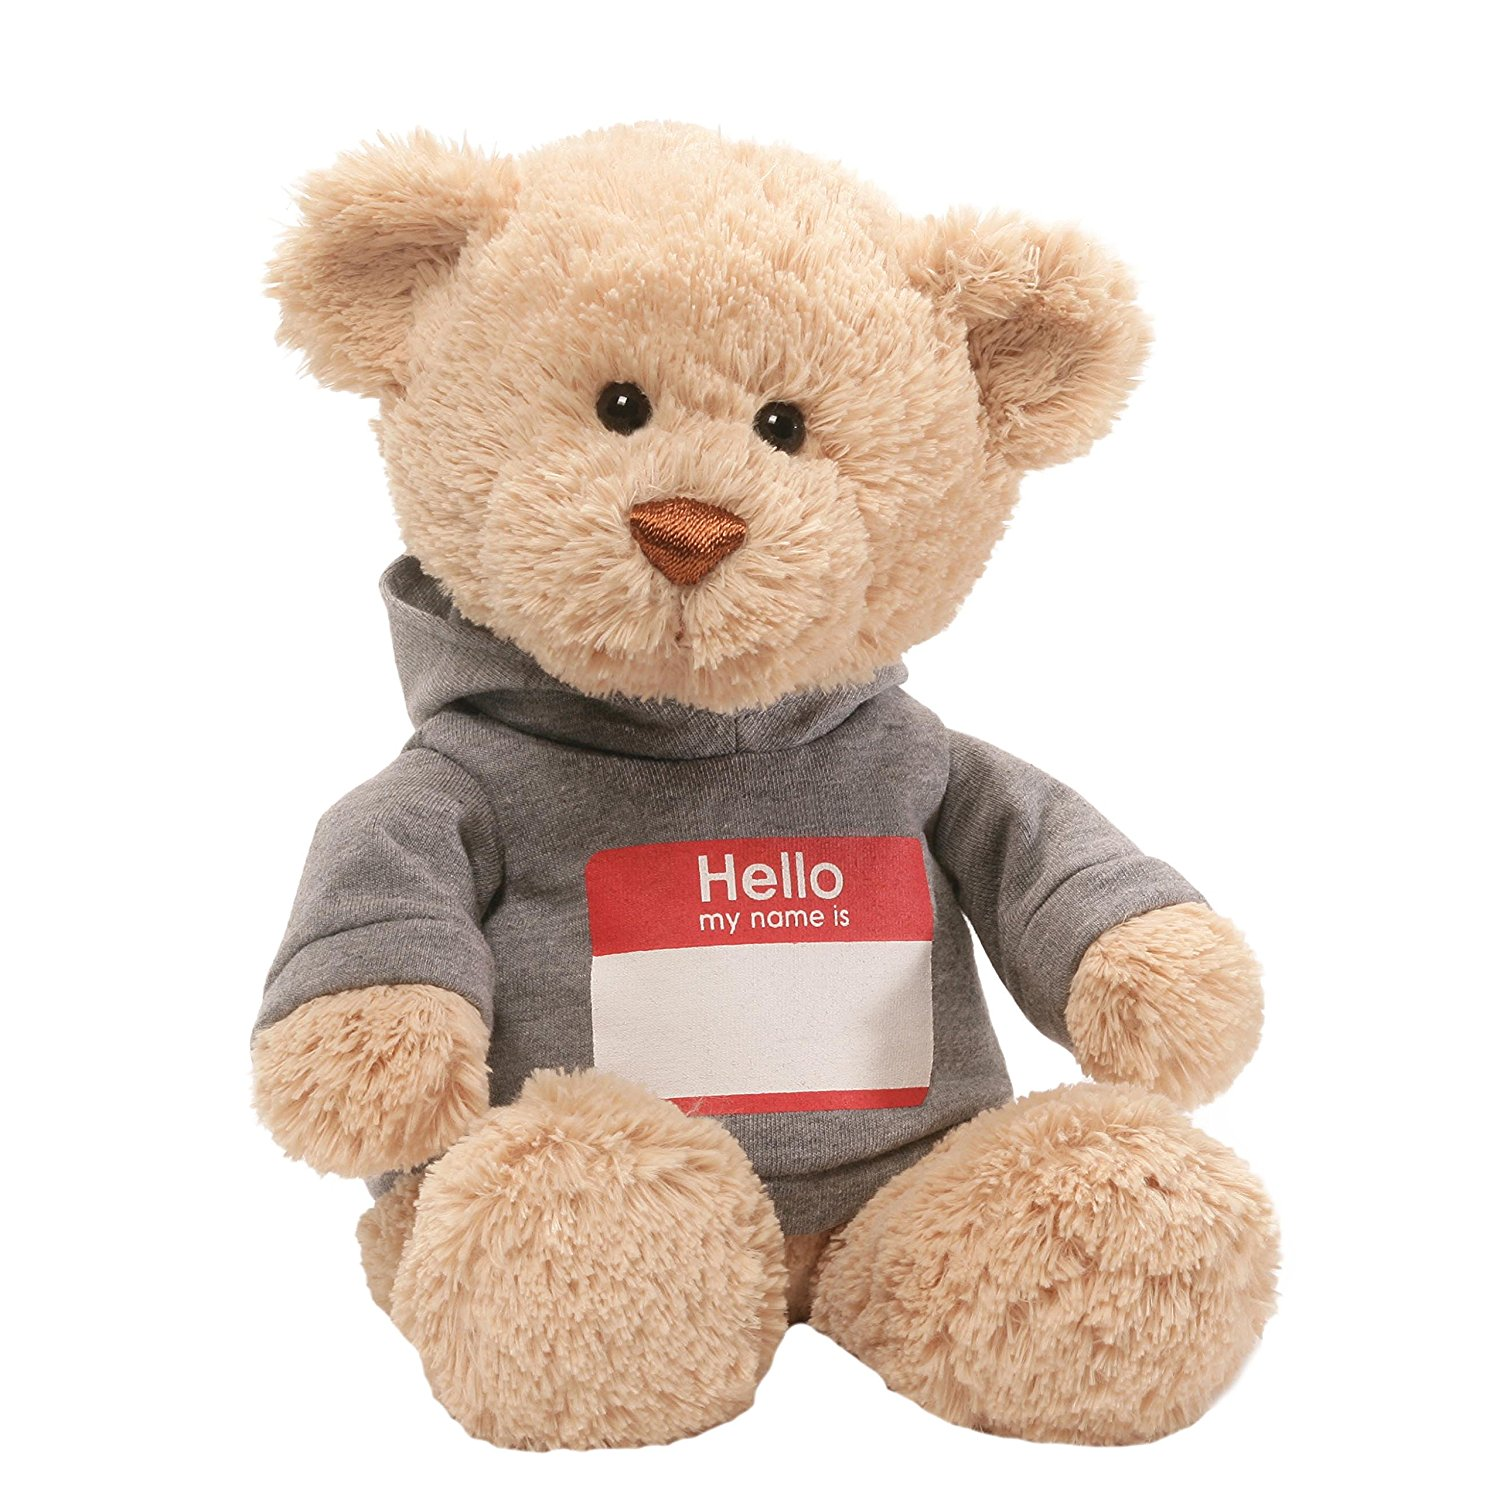 Hello My Name Is T-Shirt Stuffed Teddy Bear, Beige plush teddy bear featuring gray hoodie with a printed Hello... by GUND